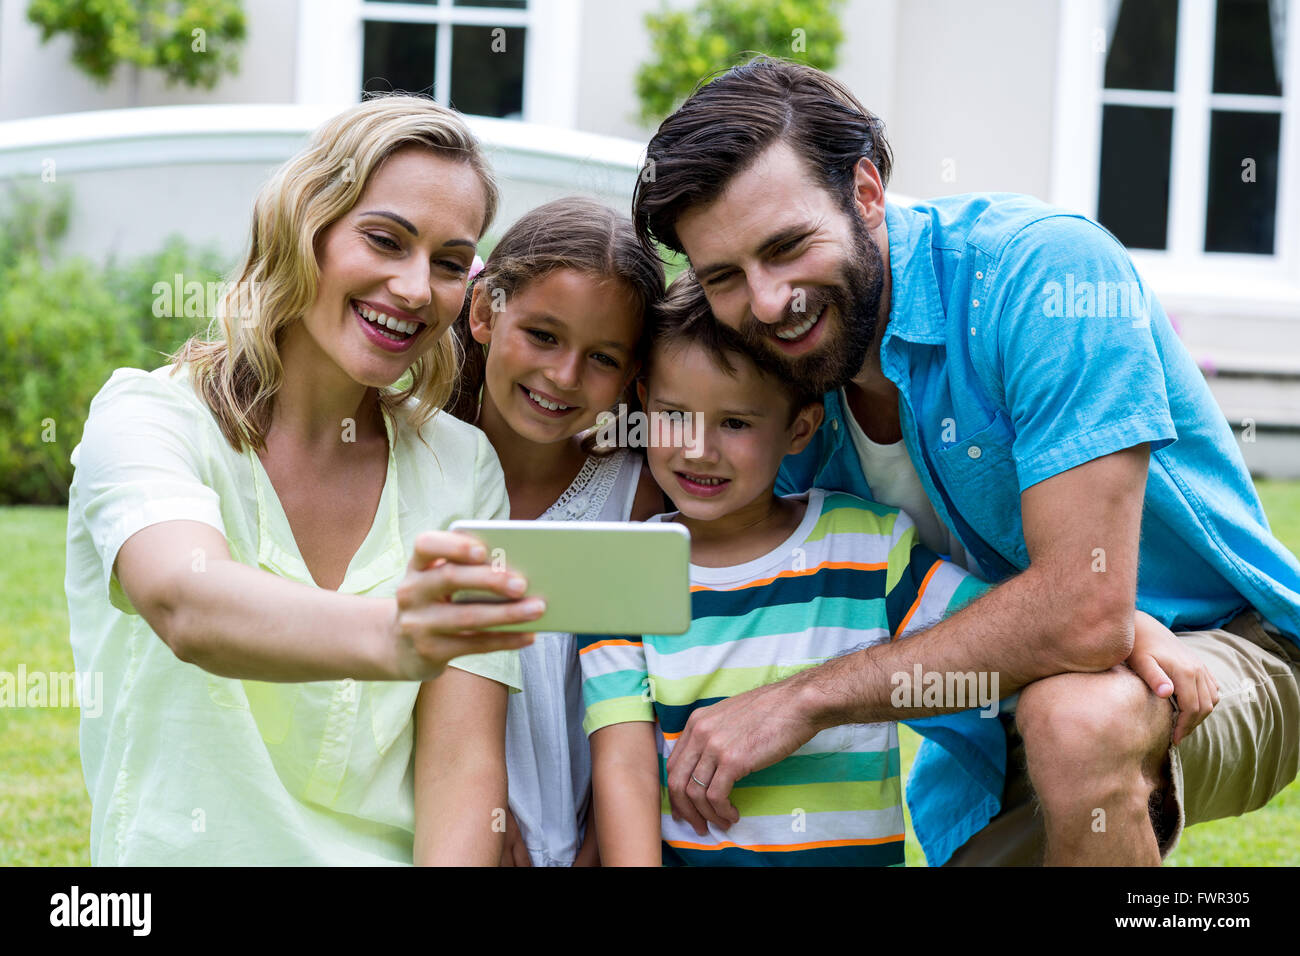 Mother taking selfie with family in yard - Stock Image